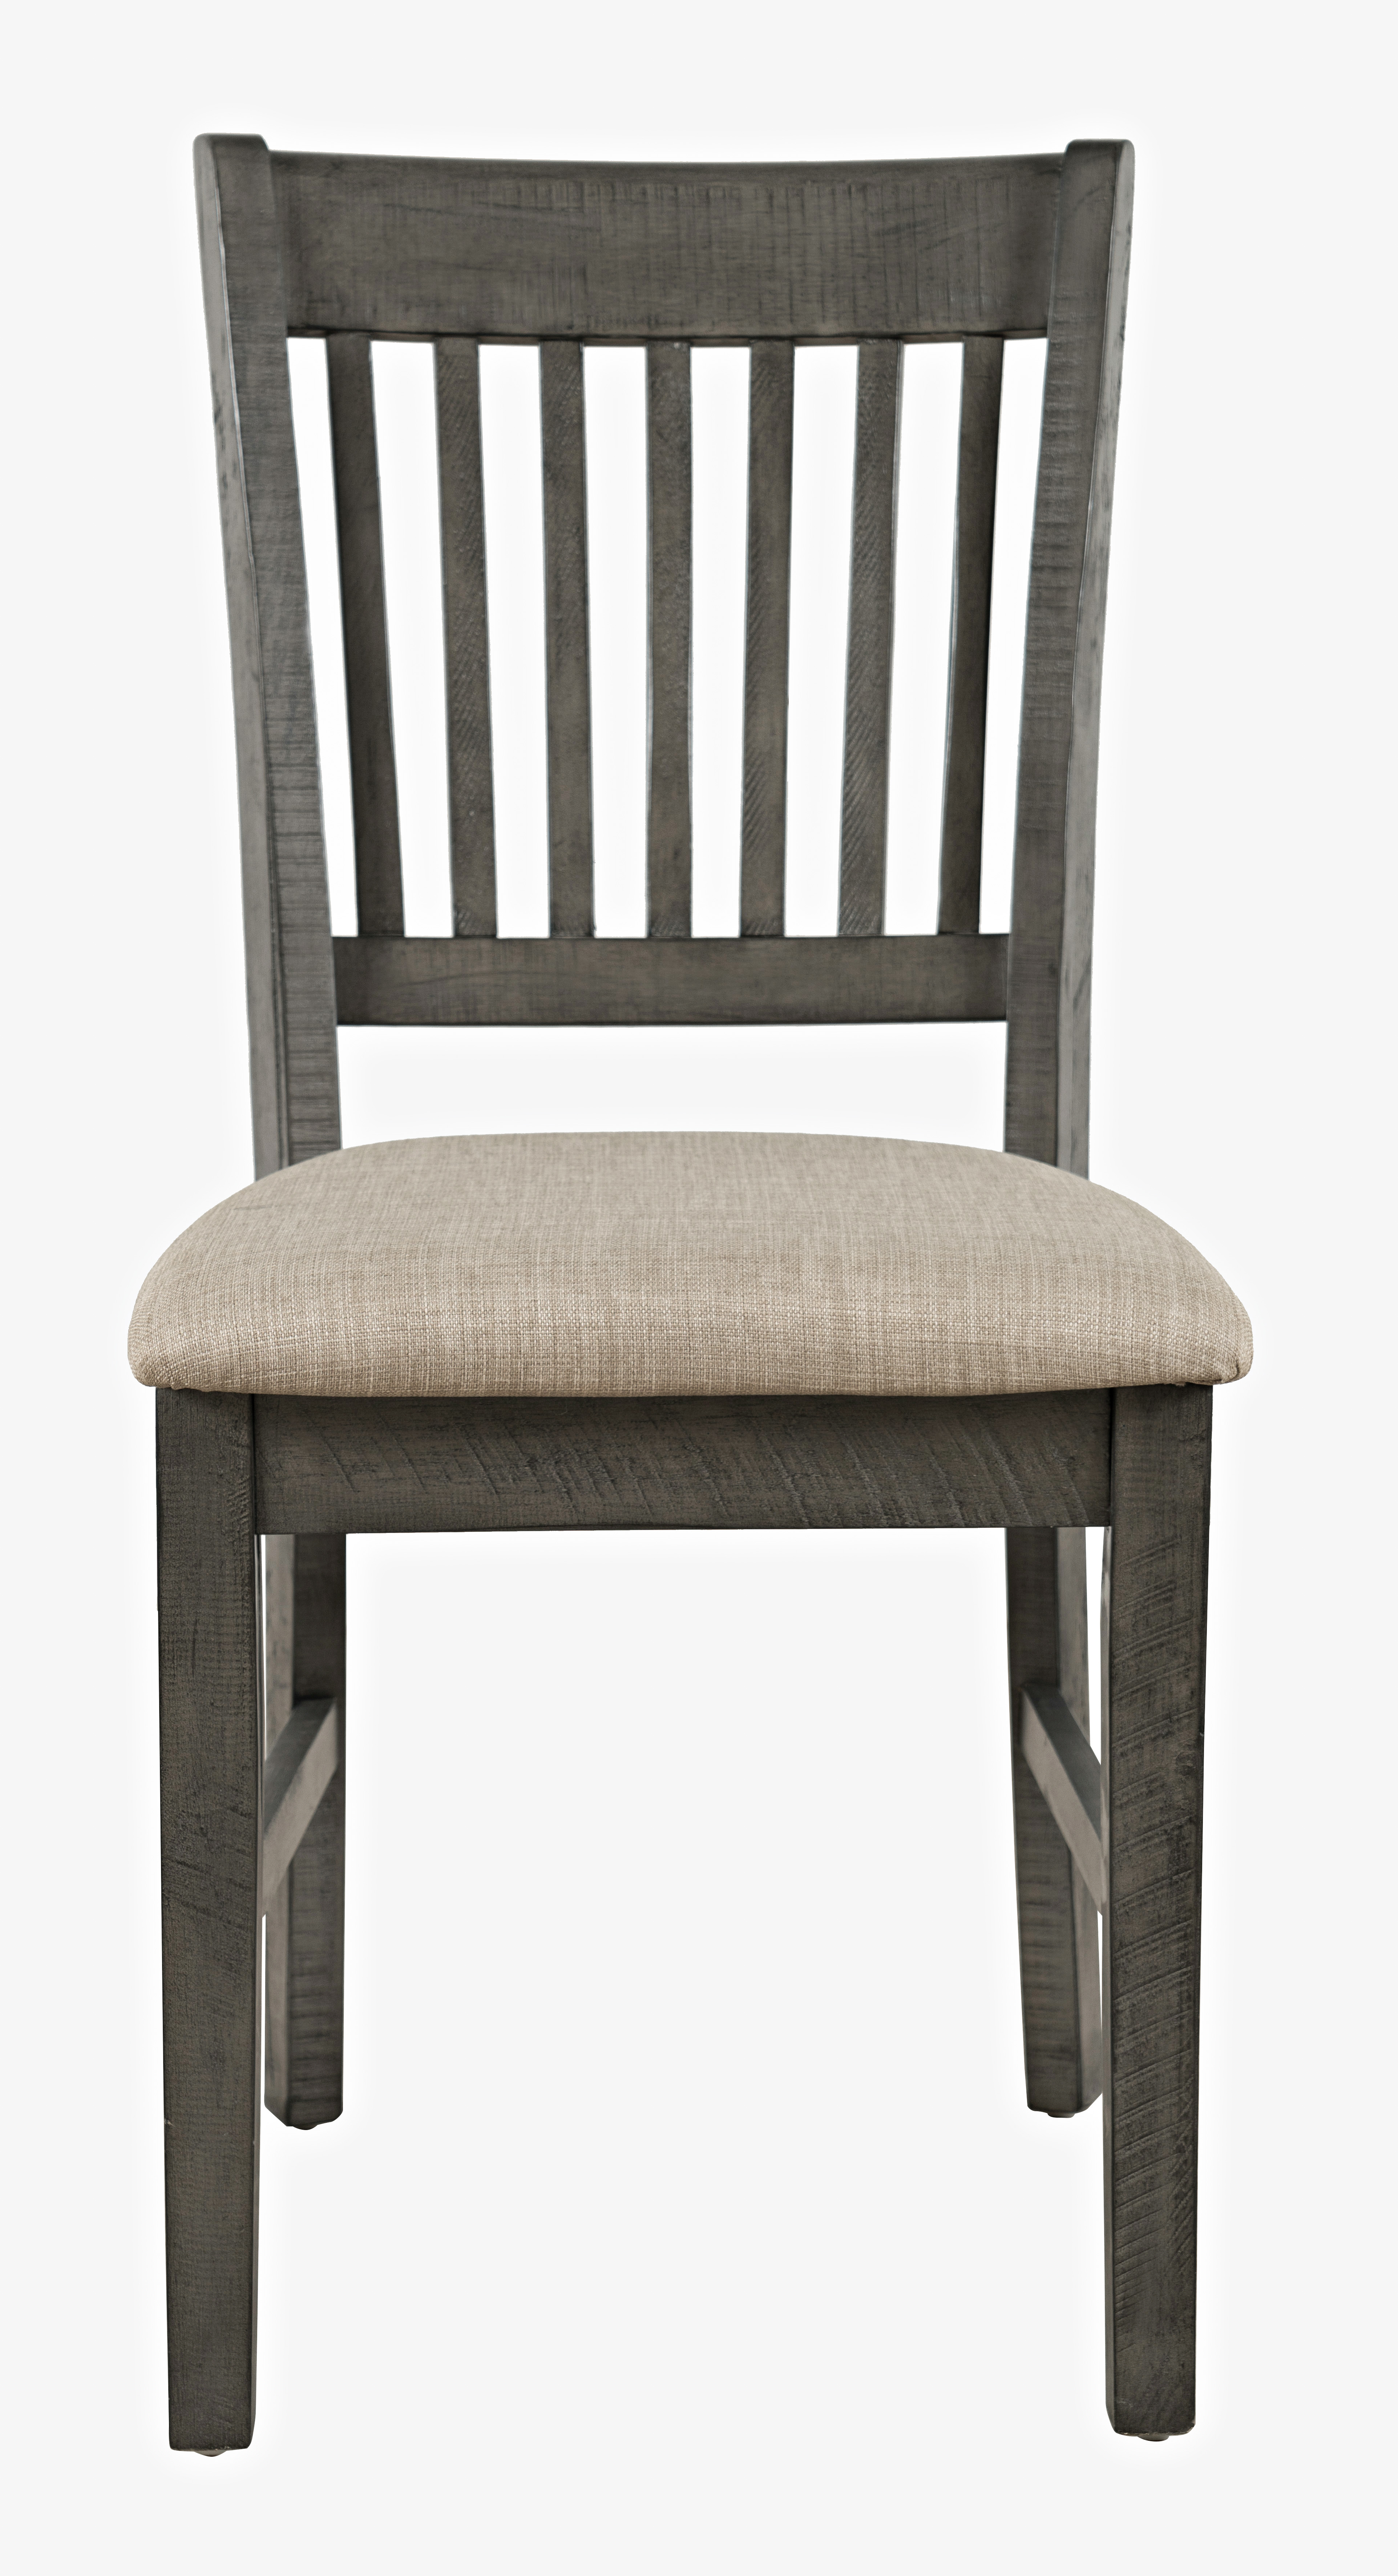 Rustic Shores Desk Chair by Jofran at Furniture Barn